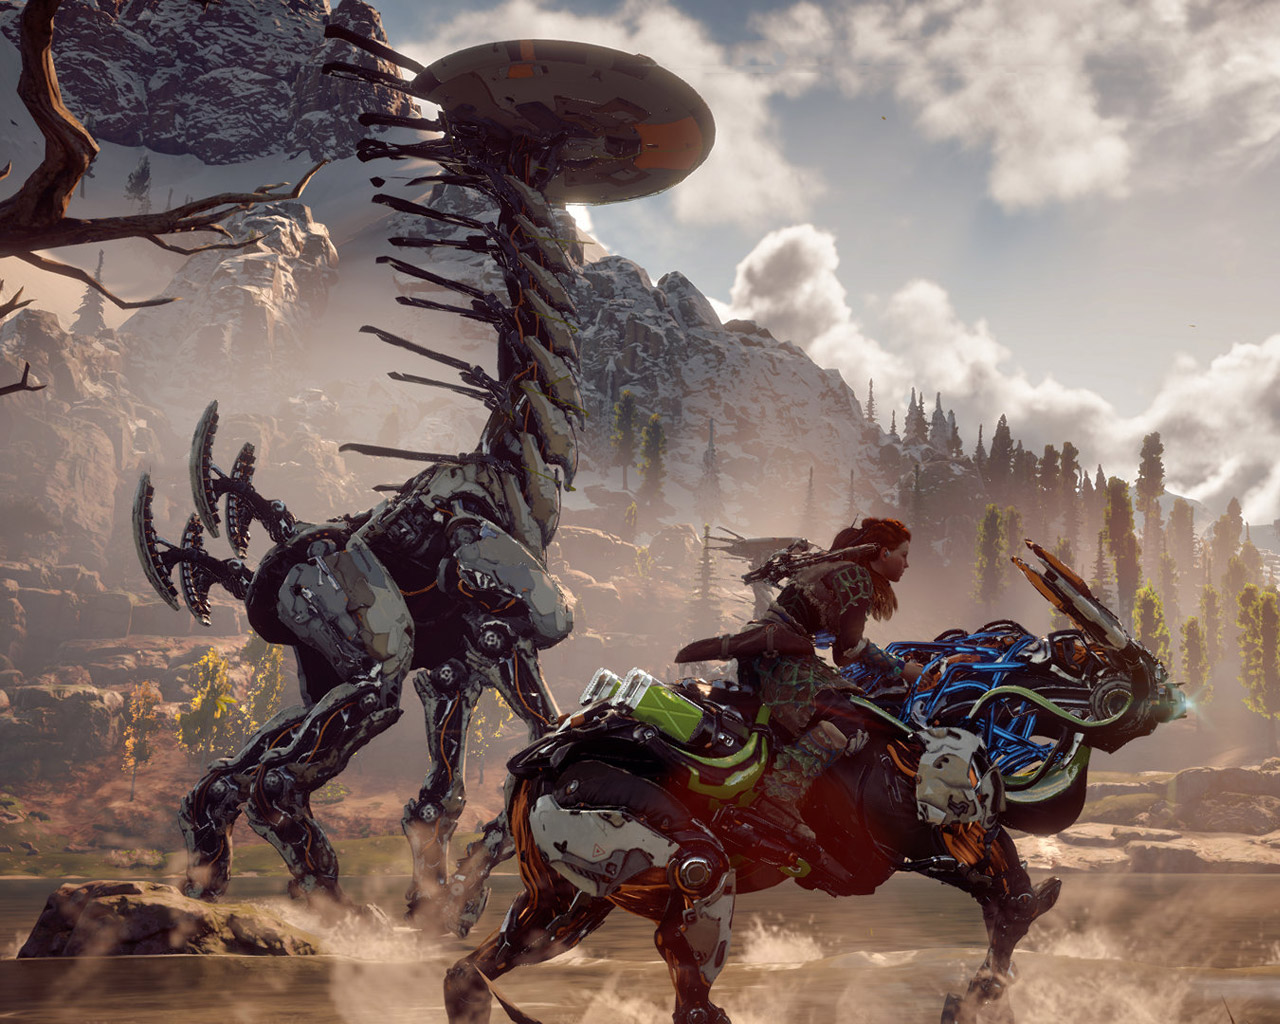 Free Horizon Zero Dawn Wallpaper in 1280x1024